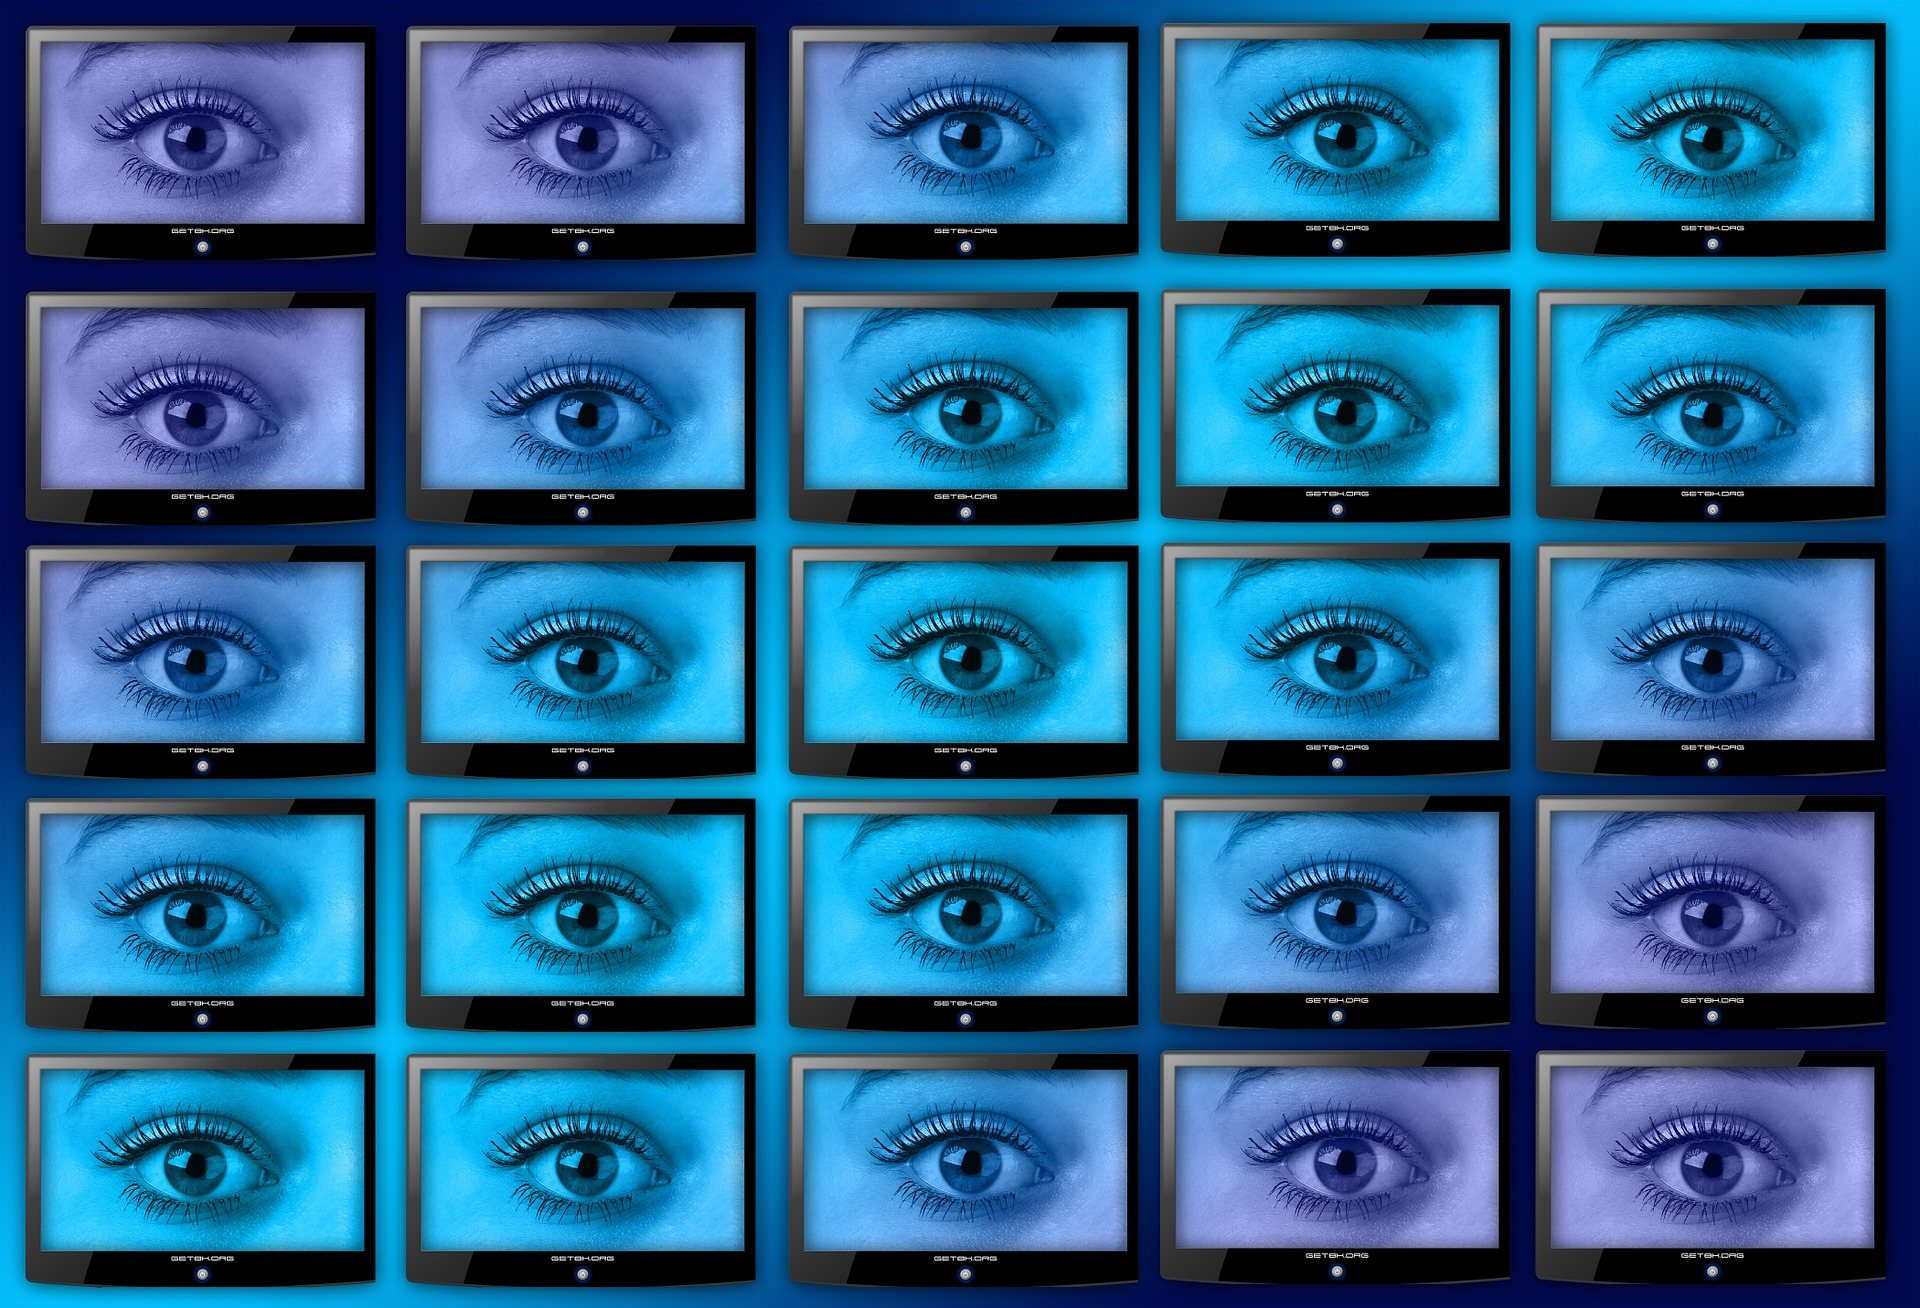 Using Video Cameras in Classroom: Benefits and Cautions